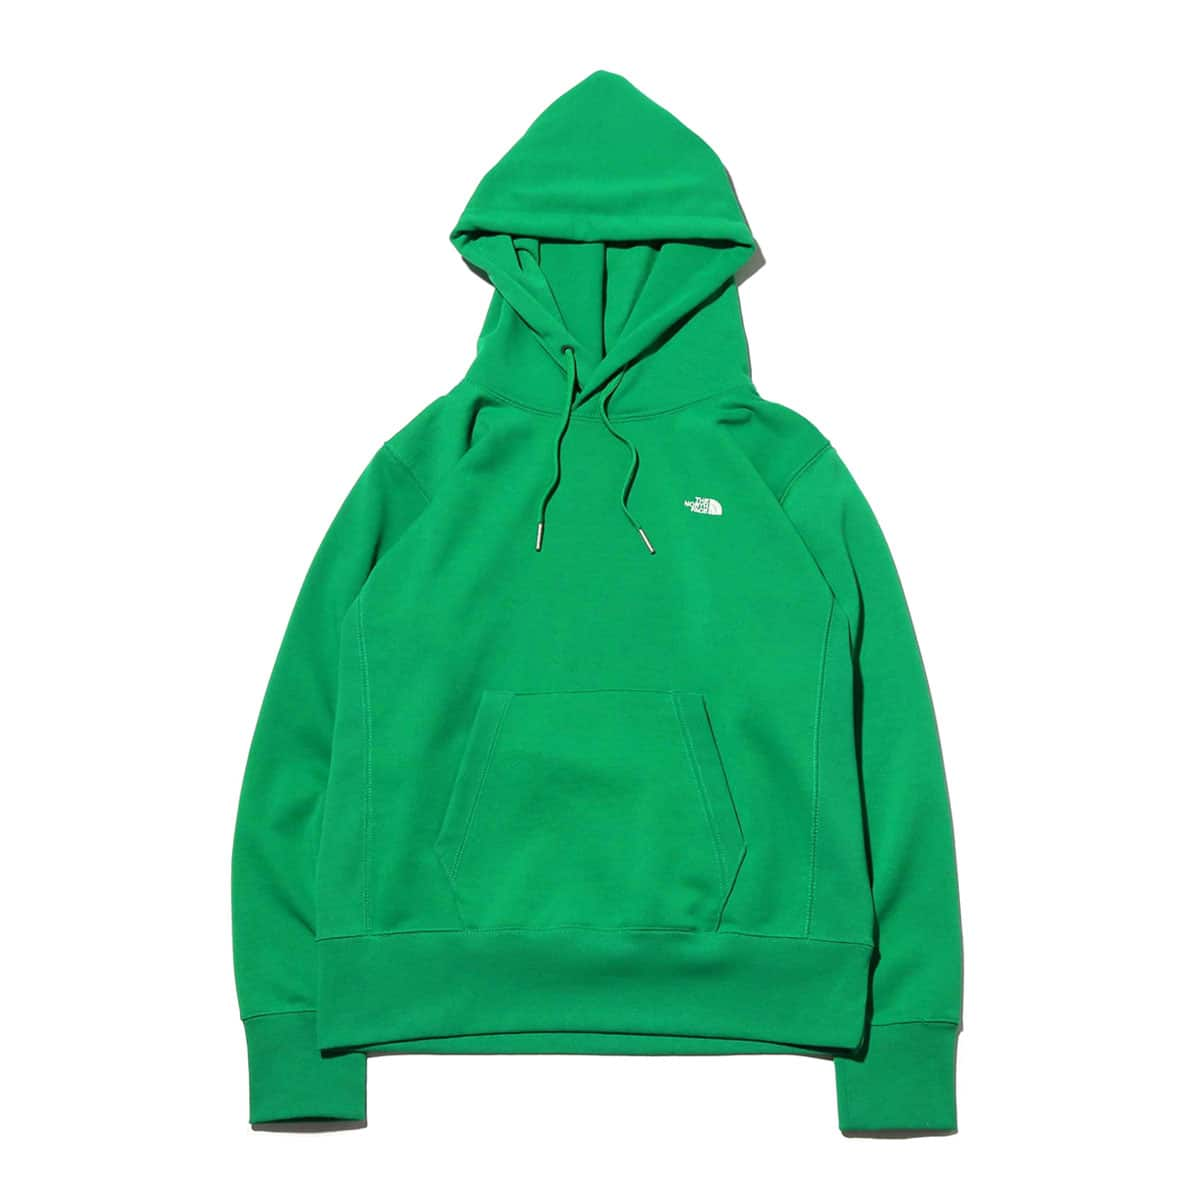 THE NORTH FACE HEATHER HOODIE プライマグリーン 19SS-I_photo_large